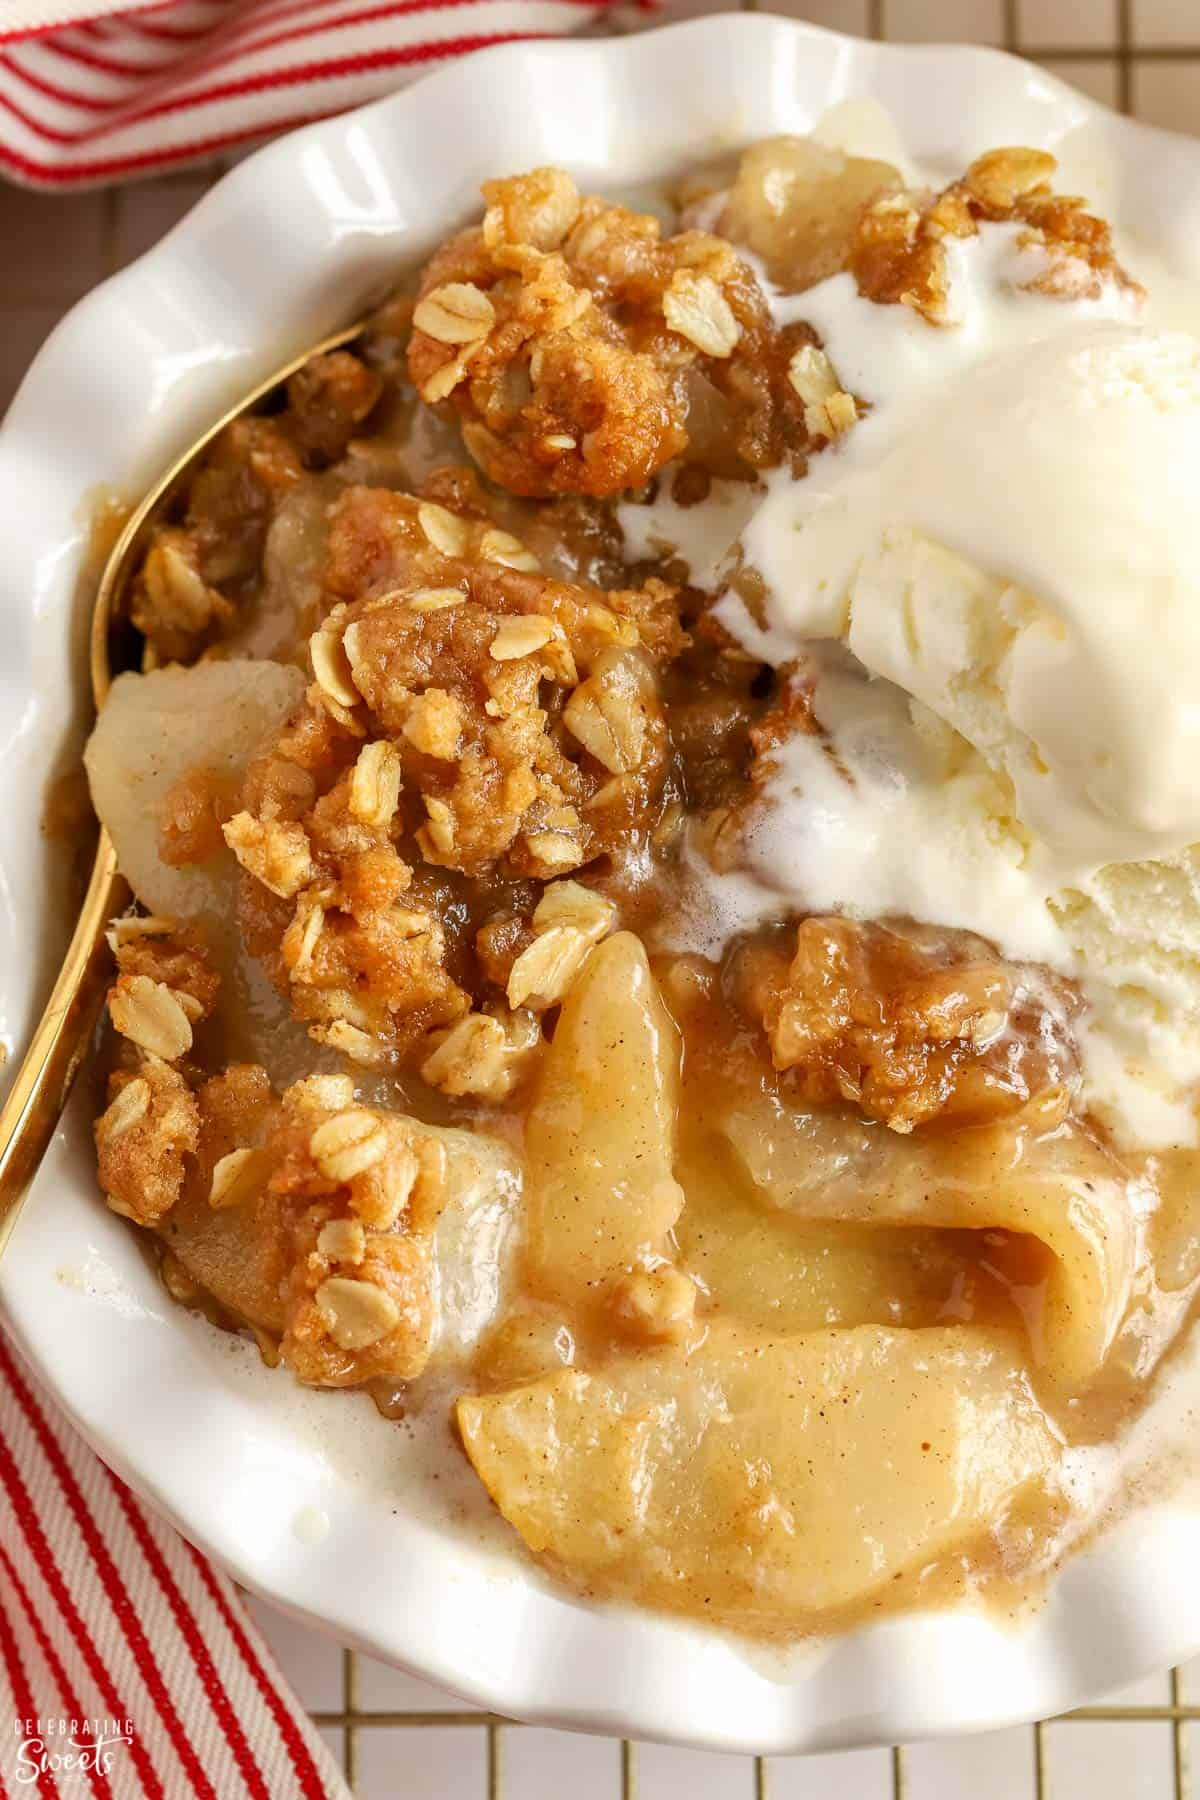 Closeup of Apple Pear Crisp topped with scoops of vanilla ice cream in a white bowl.